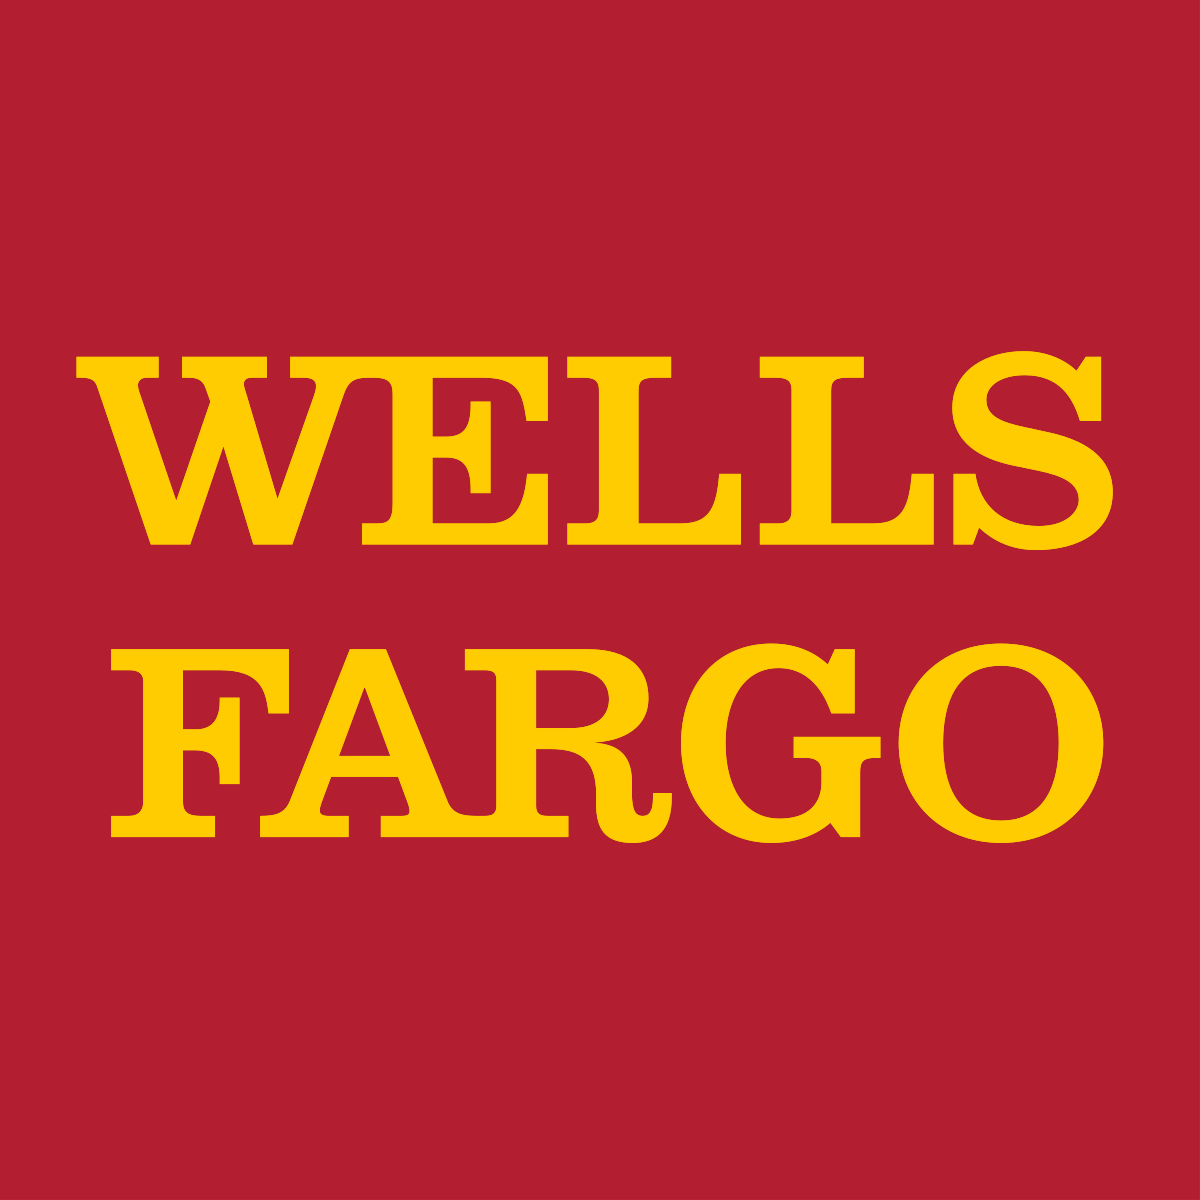 U.S. Bank Logo - Wells Fargo